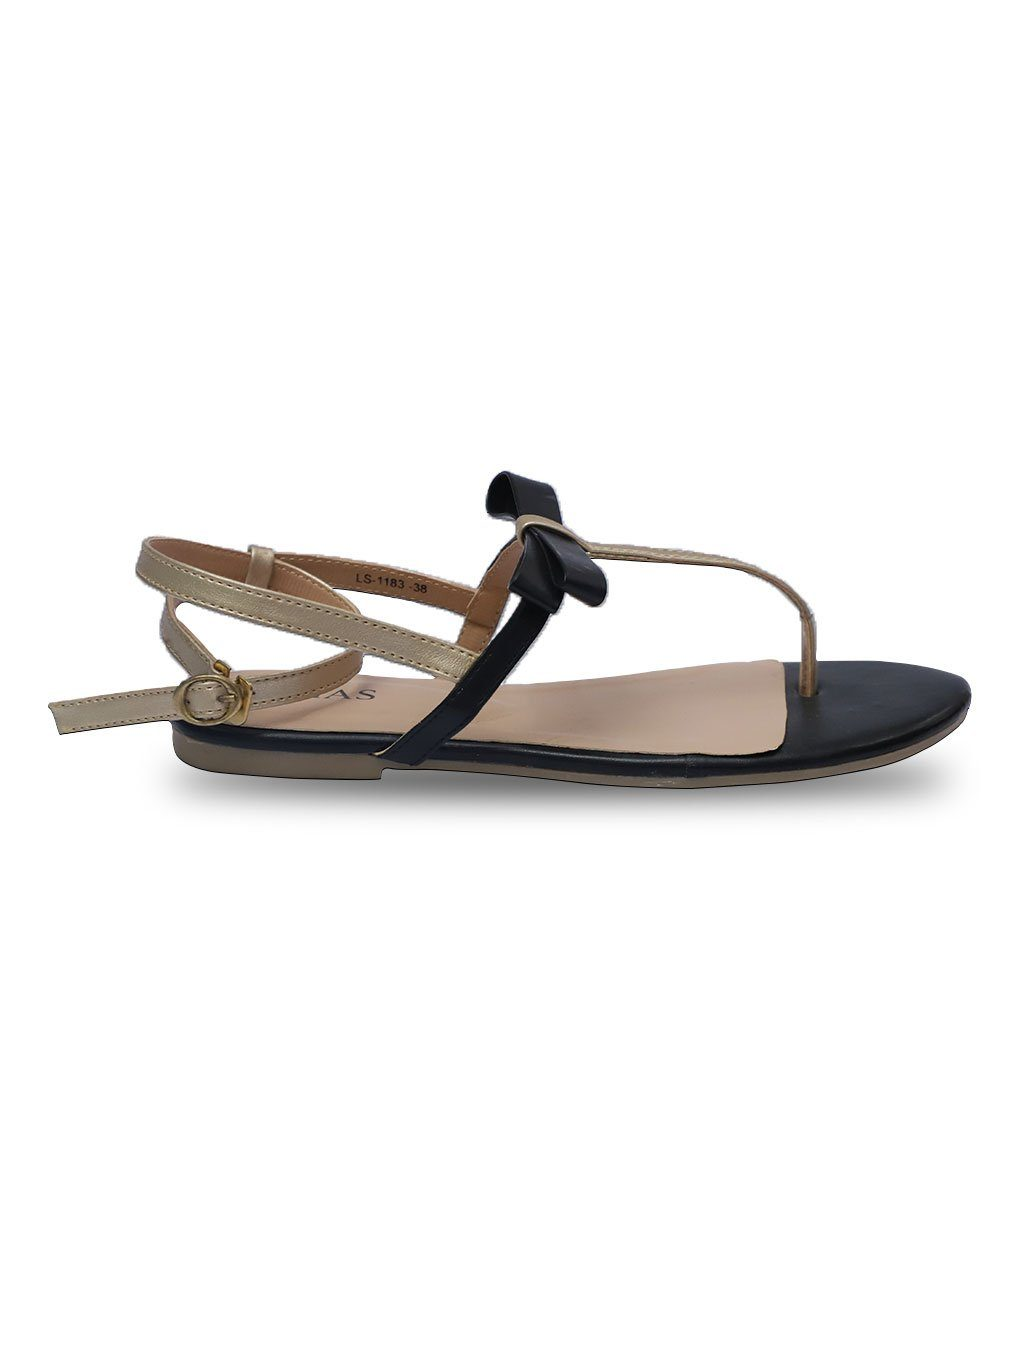 Casual Sandal LS1183 Shoes Summer Edition 1 FASSHOLAD